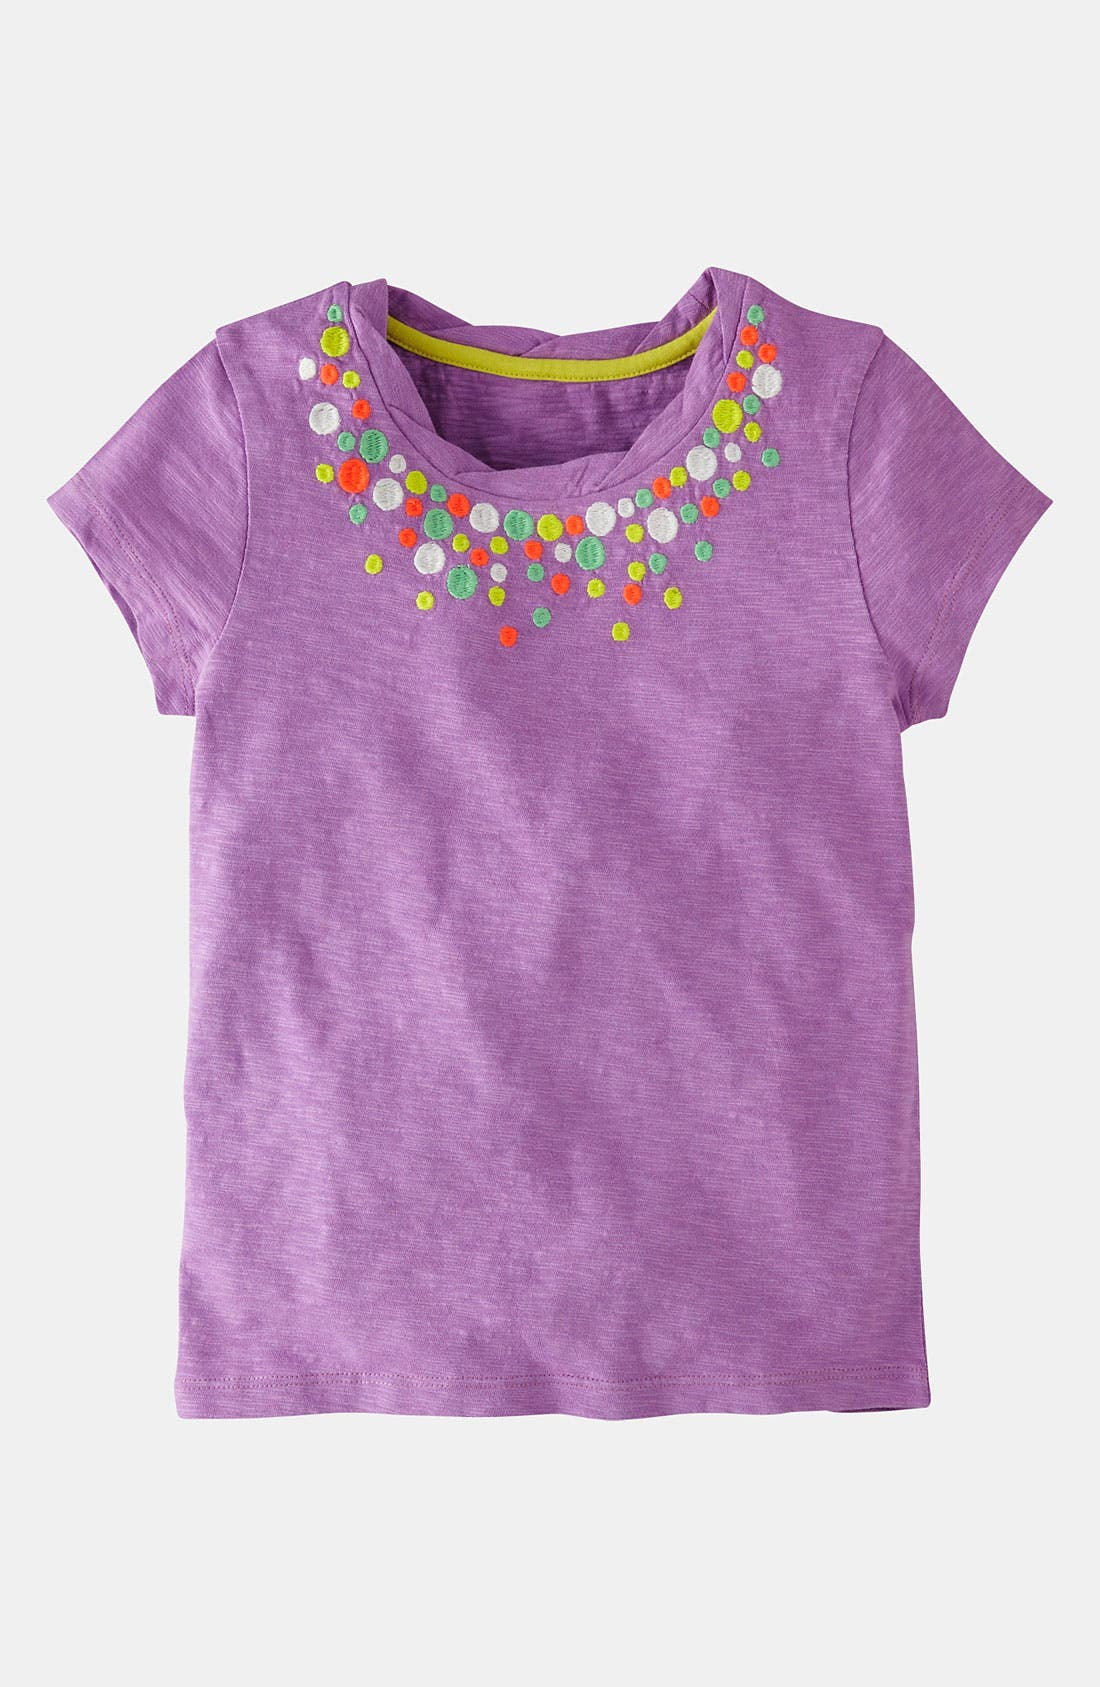 Alternate Image 1 Selected - Mini Boden 'Pretty' Embroidered Tee (Toddler, Little Girls & Big Girls)